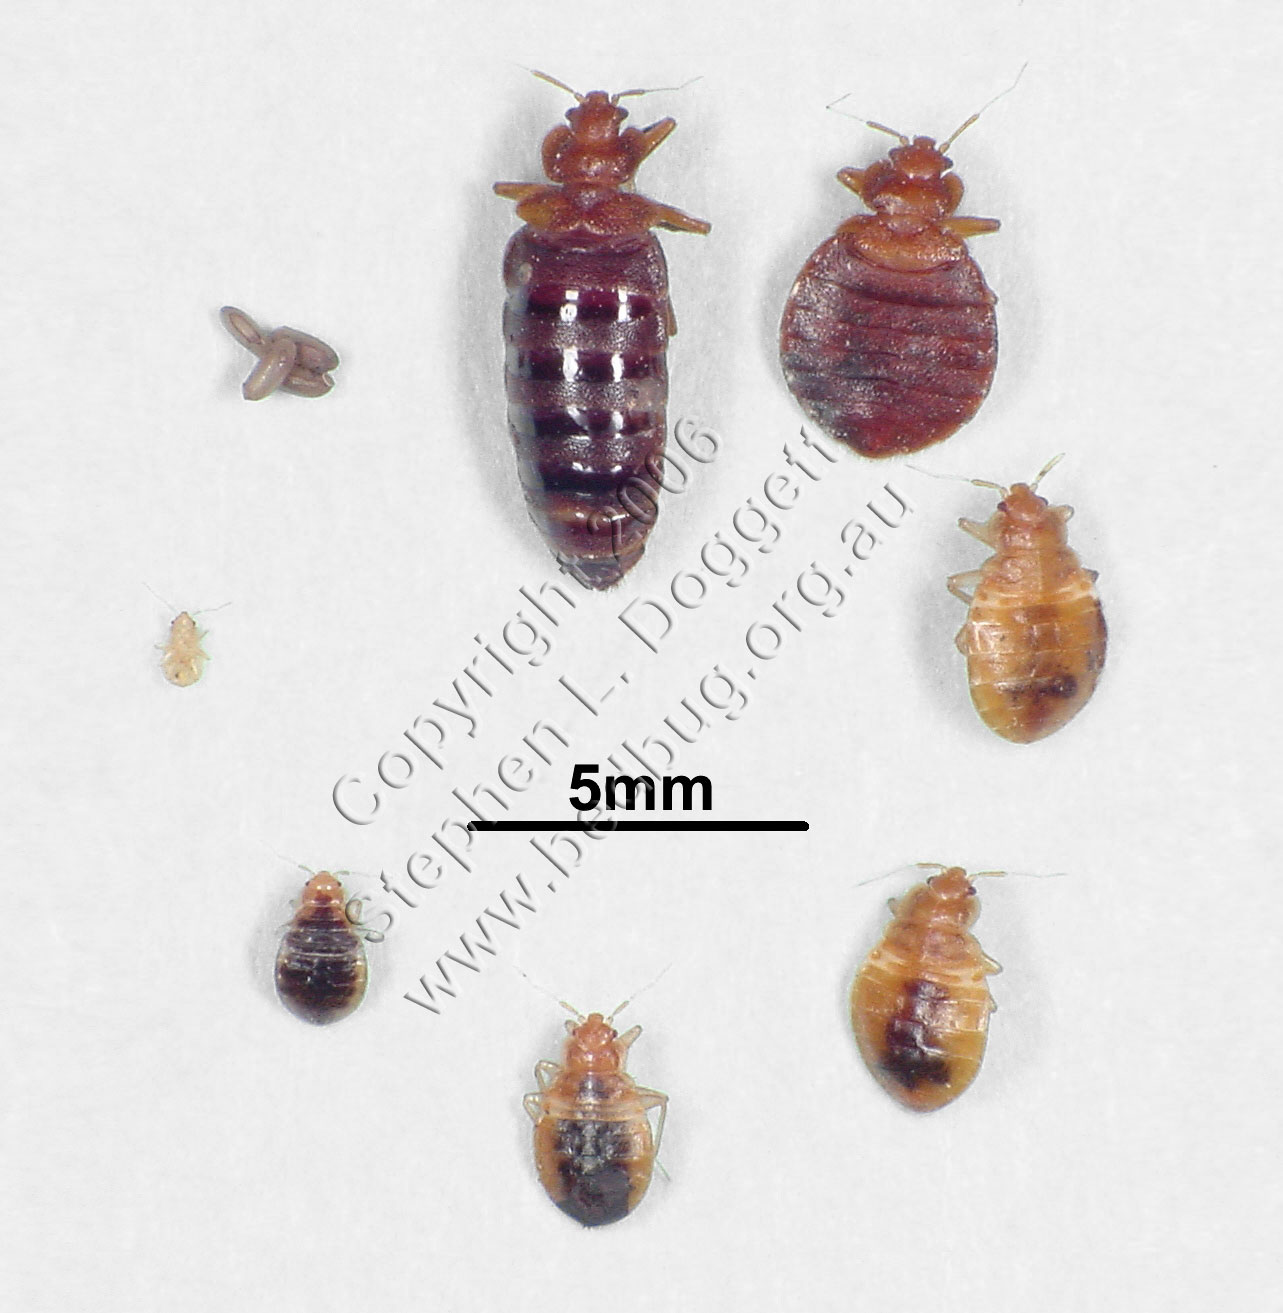 Picture Of Bed Bug Stages